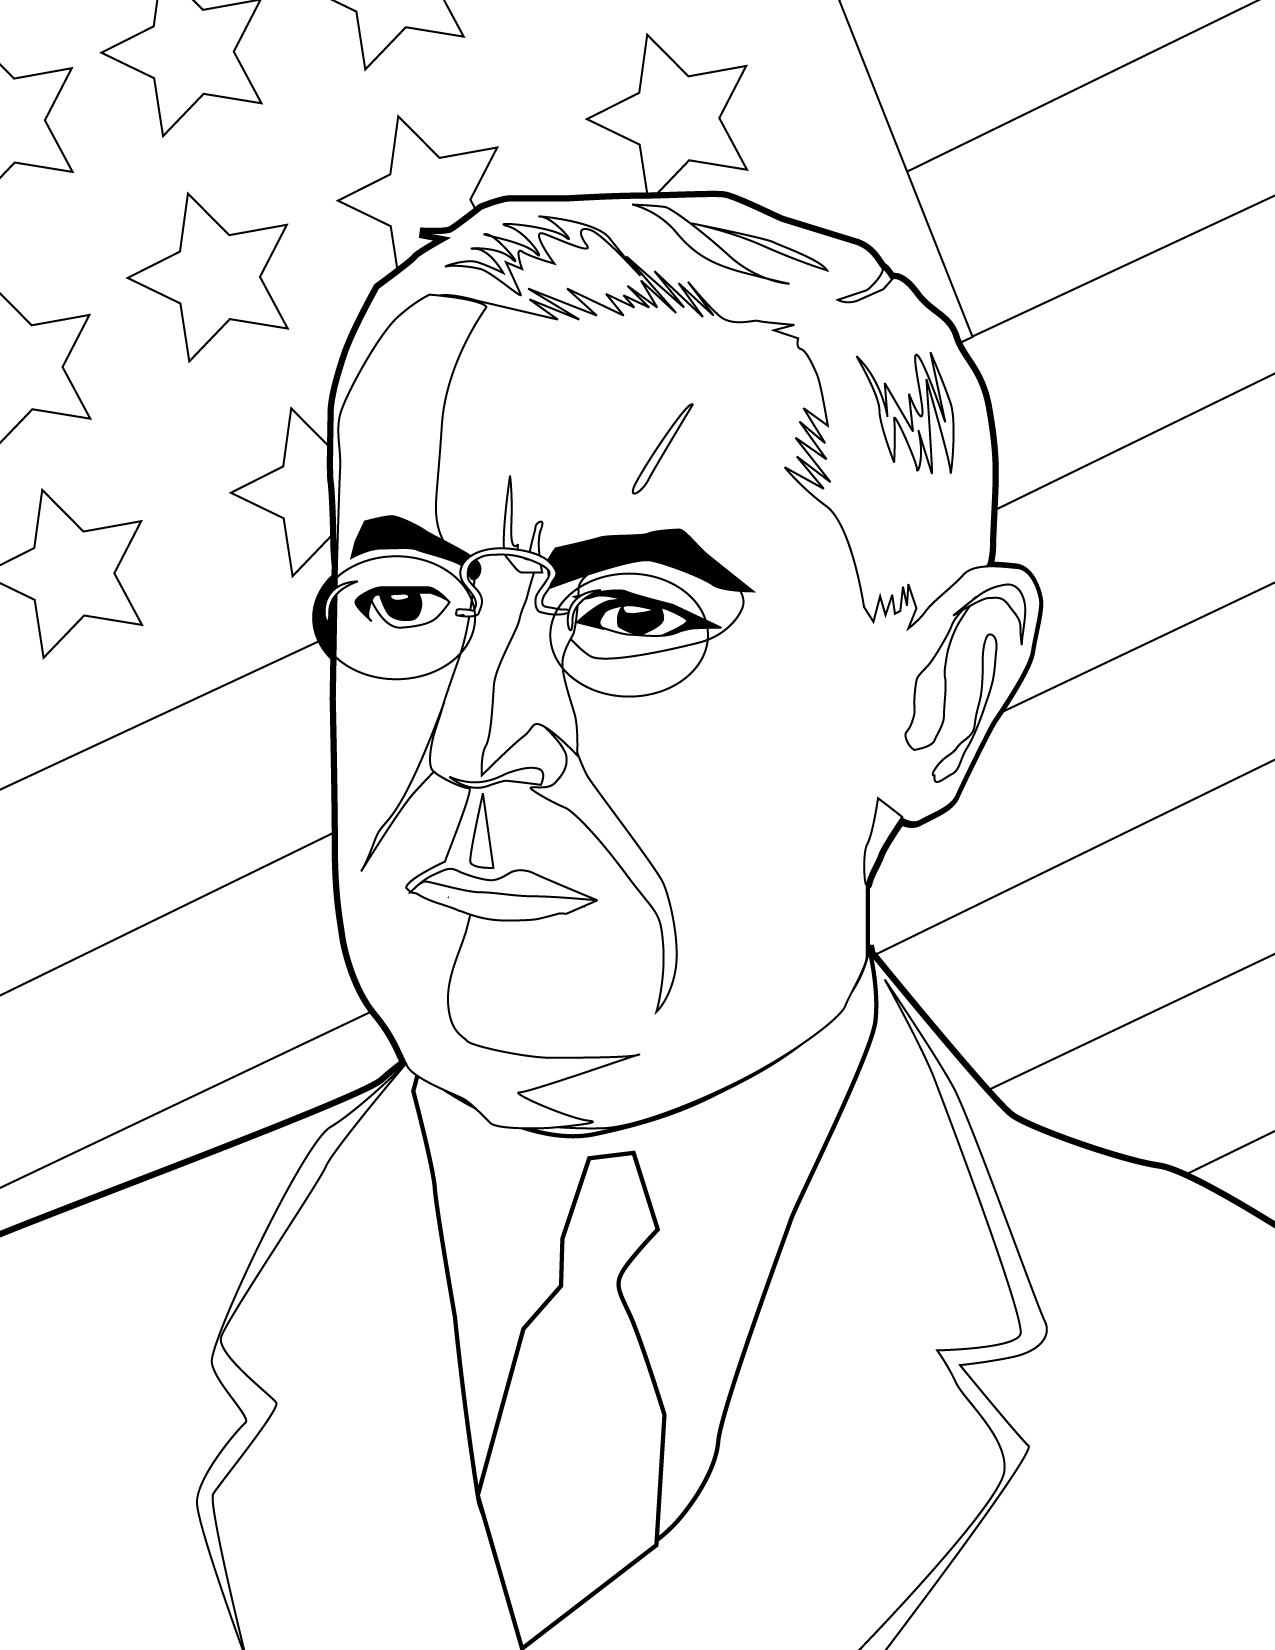 Woodrow Wilson Colouring Pages Sketch Coloring Page